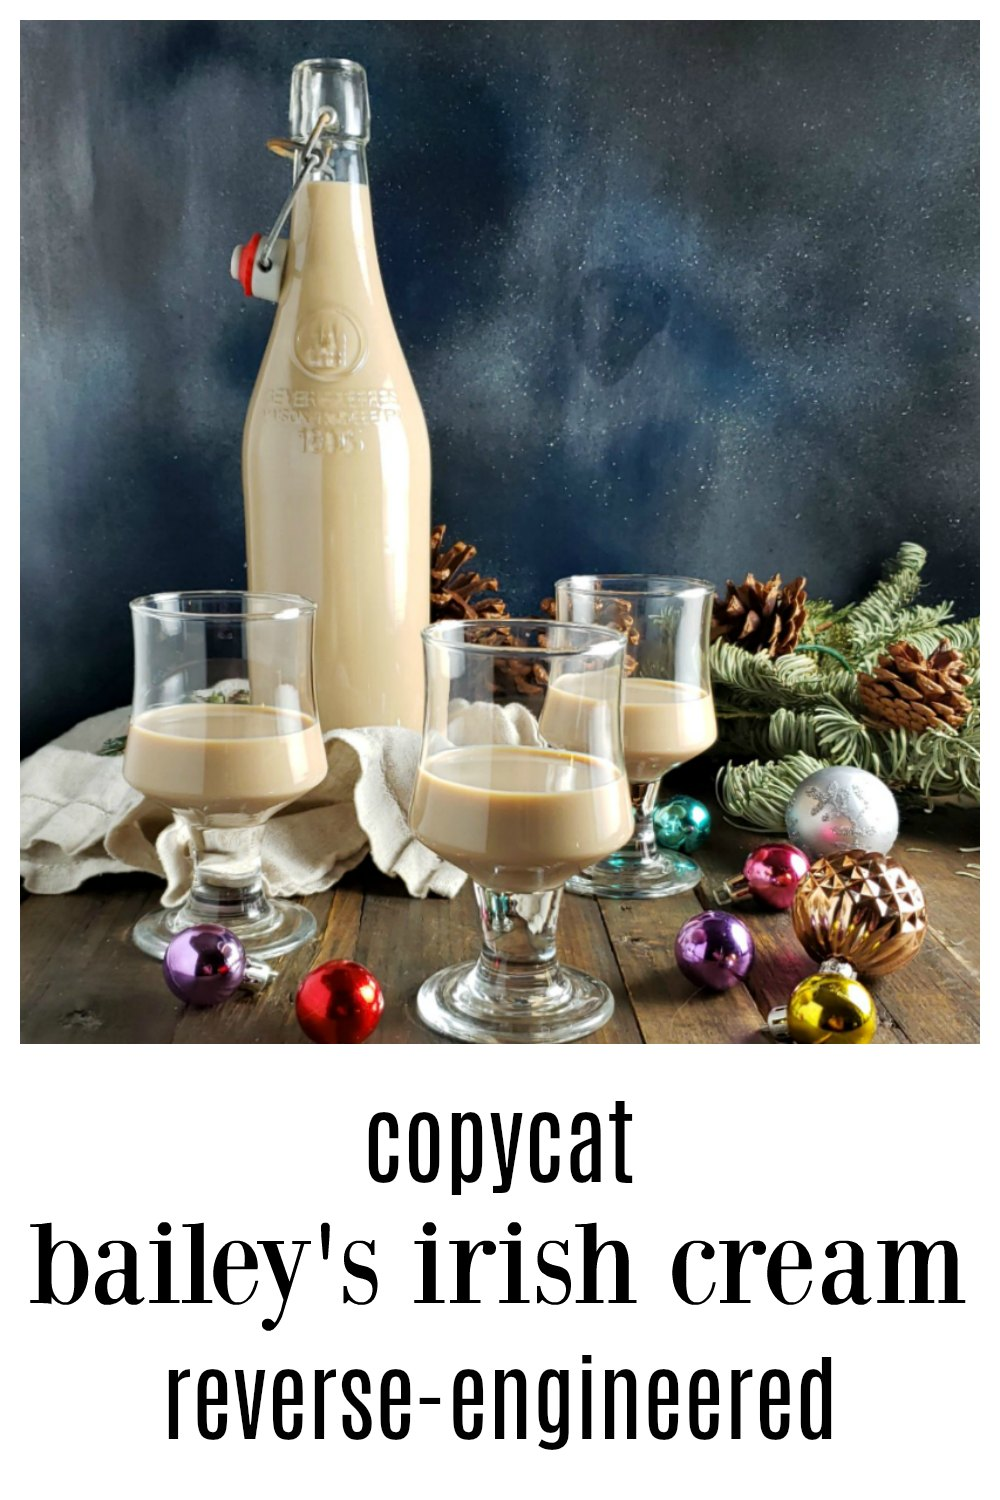 This Baileys Irish Cream Recipe Copycat Version is reverse engineered from actual Baileys. It's like no homemade Baileys you've ever had. The taste is stellar, there is no condensed milk, coffee or almond and uses real cream just like the real Baileys Under $10/bottle even using imported Irish Whiskey. #HomemadeBaileys #CopycatBaileys #HomemadeIrishCream #CopycatIrishCream #IrishCreamRecipe #BaileysRecipe #StPatricksDayRecipe #StPaddysDayRecipe #Irish #Cocktails